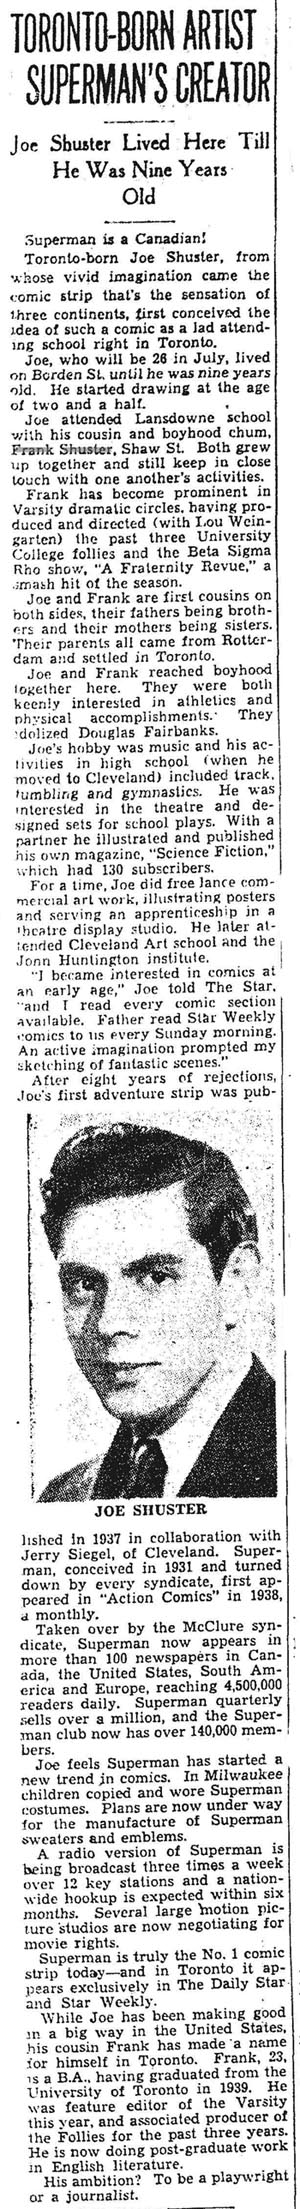 star 1940-03-14 profile of joe shuster